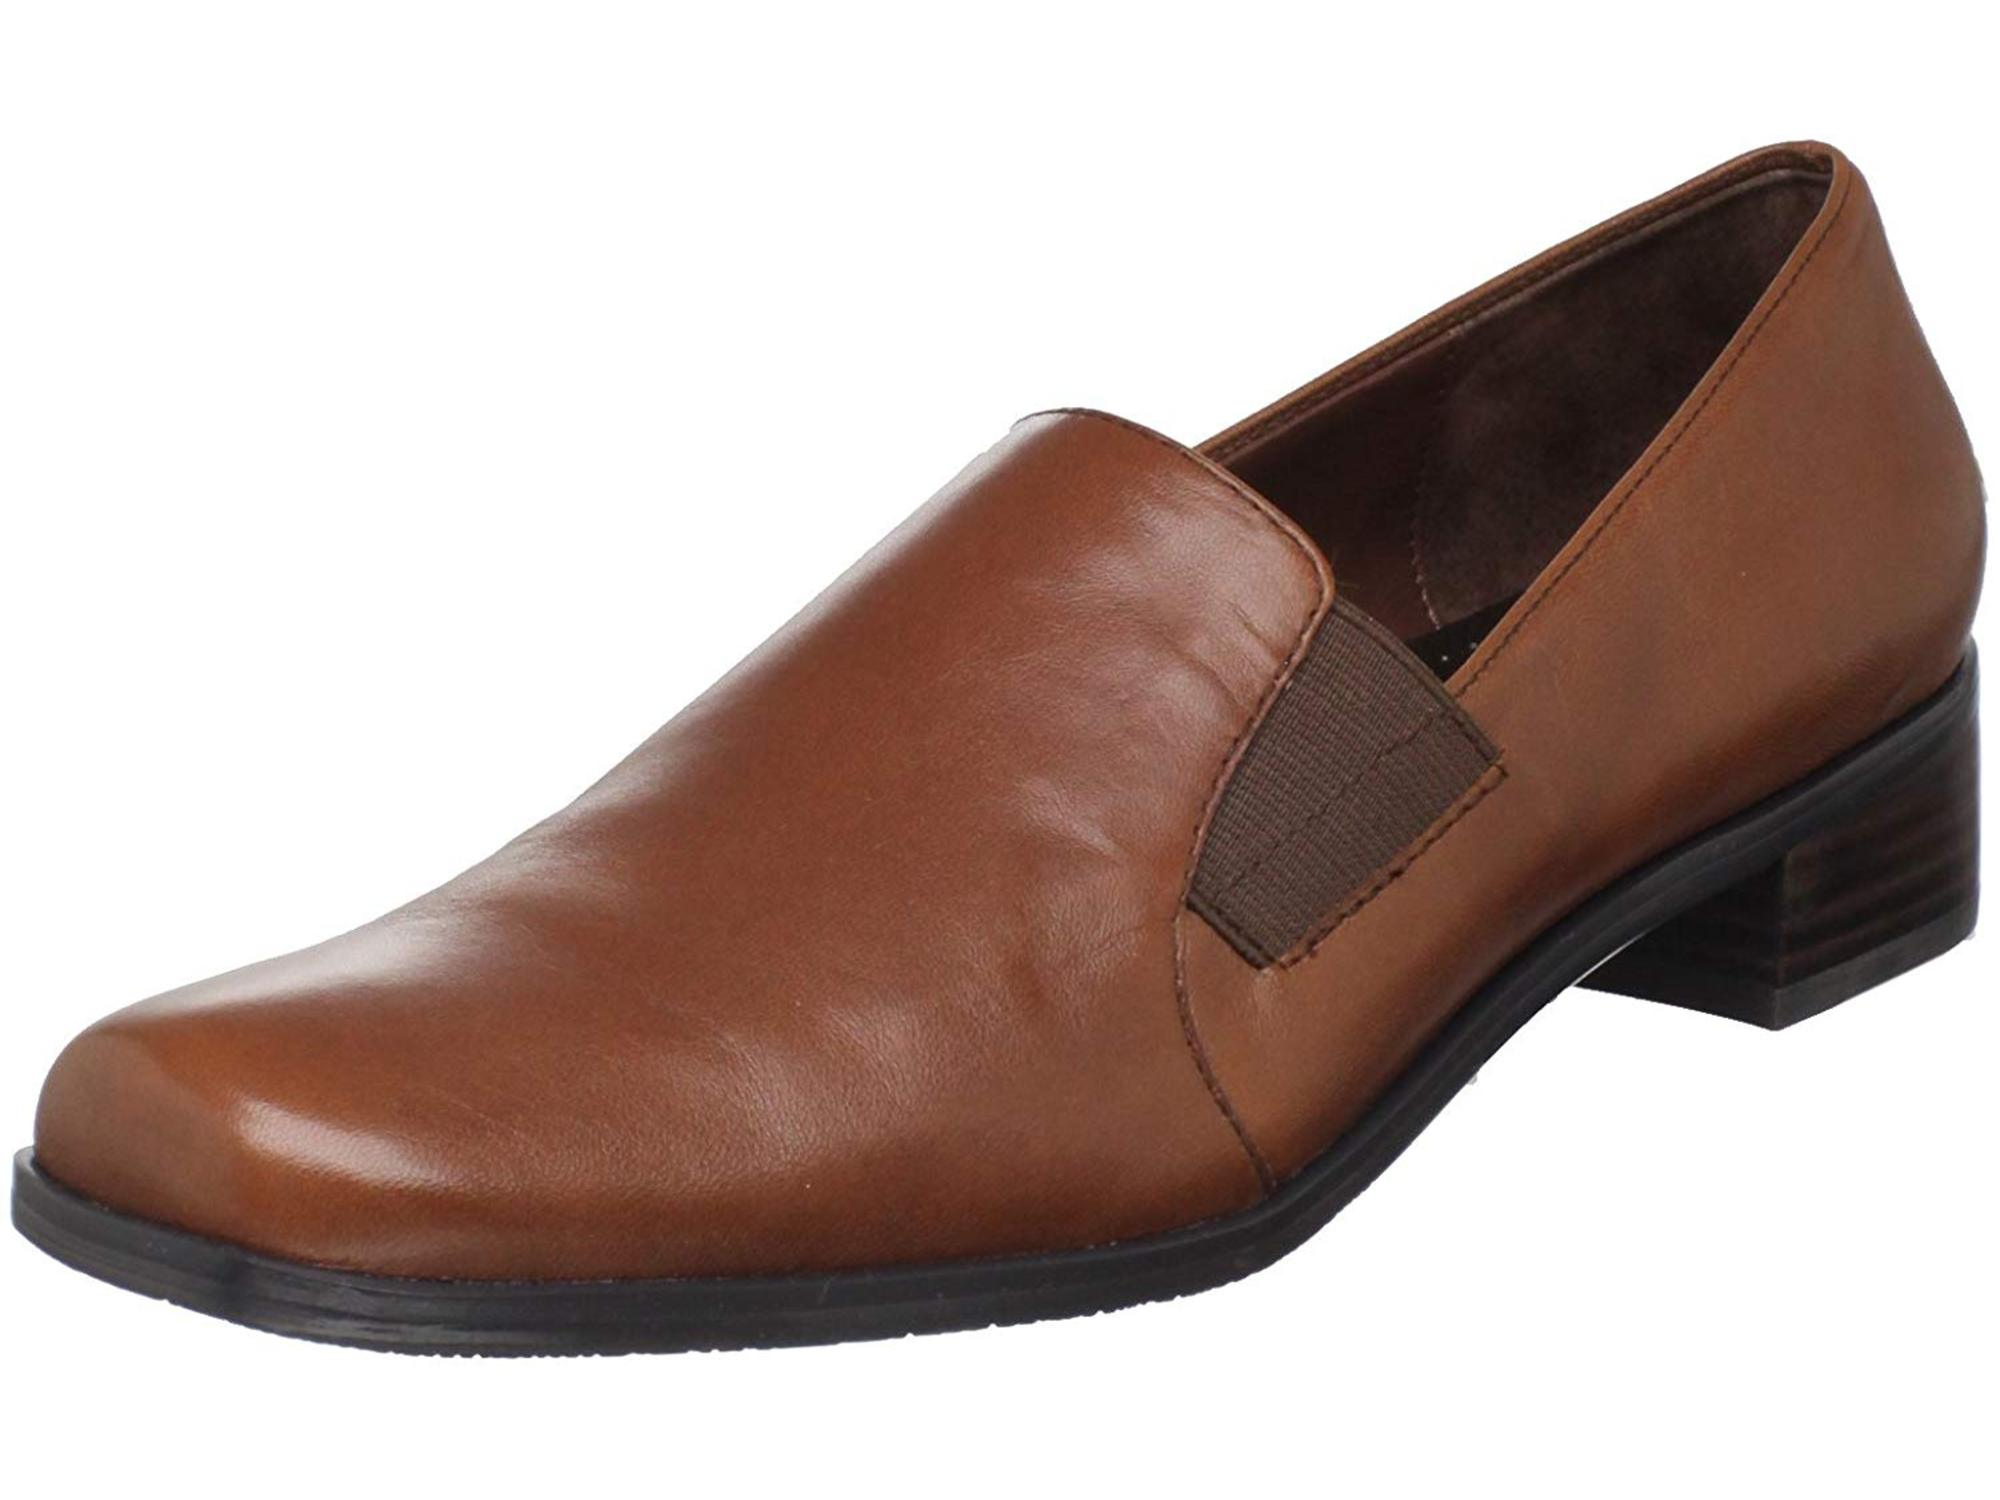 Trotters Women's Ash Loafer by Trotters